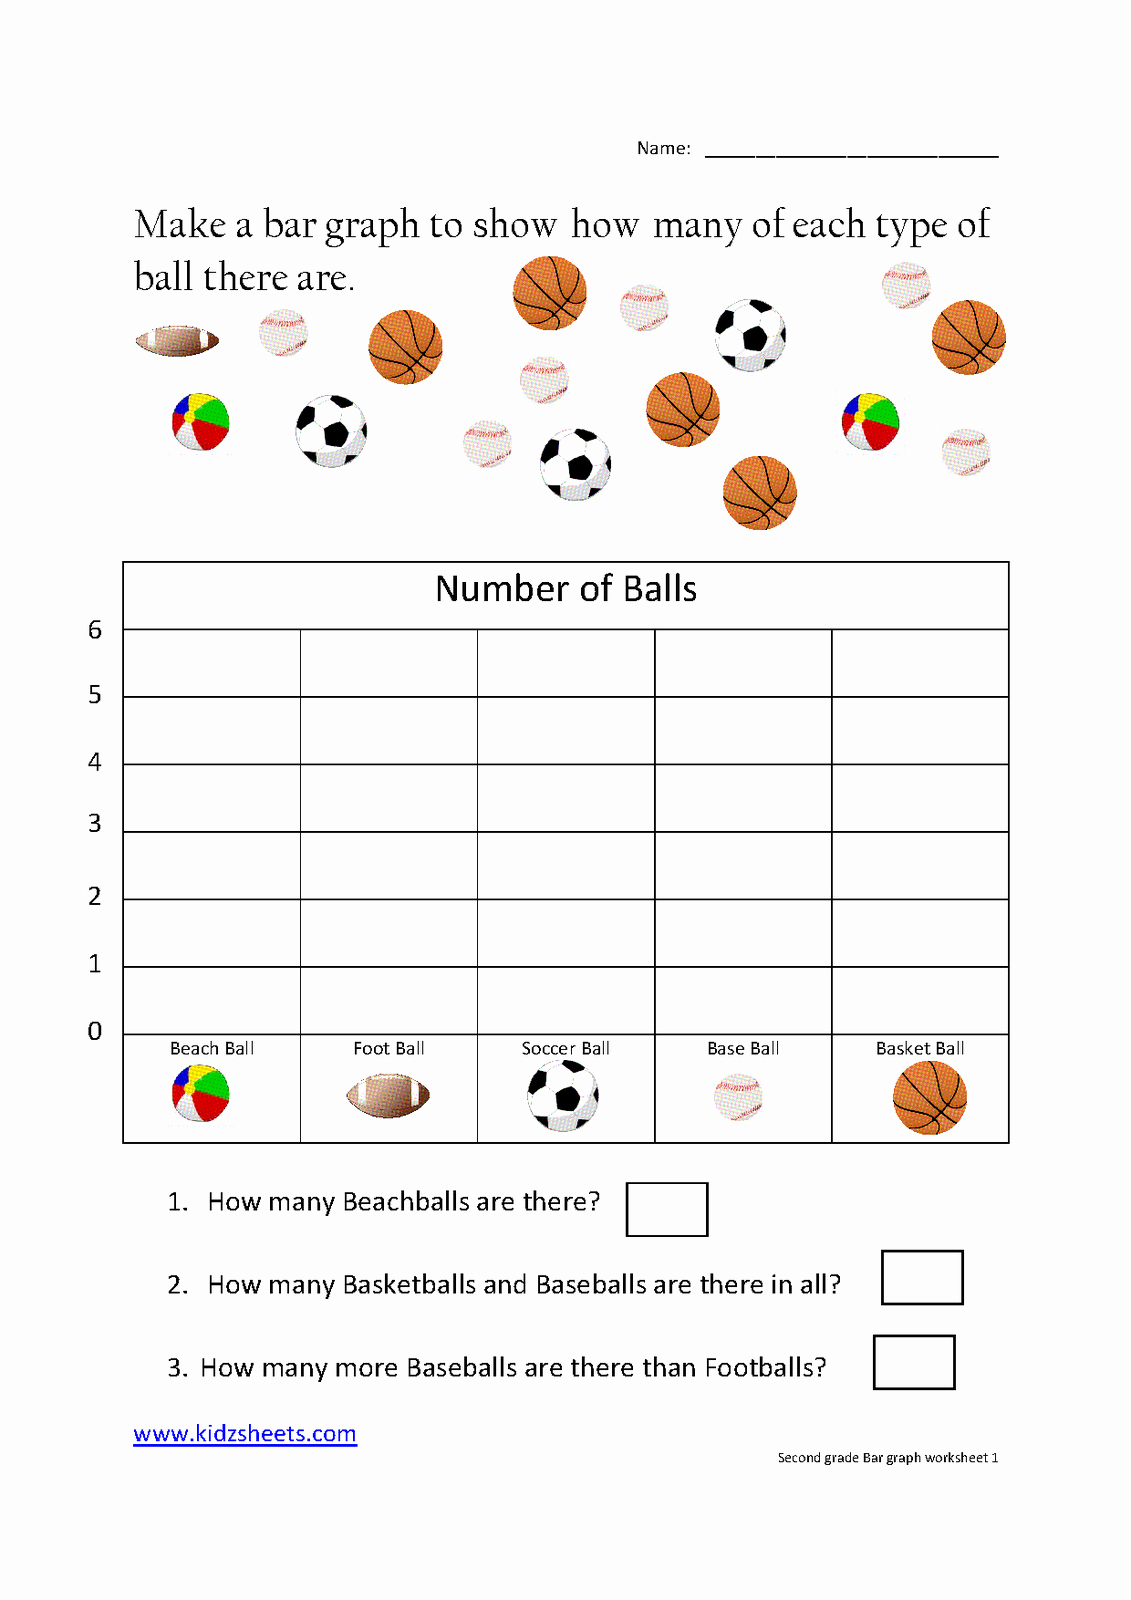 Free Bar Graph Worksheets Unique Kidz Worksheets Second Grade Bar Graph Worksheet1